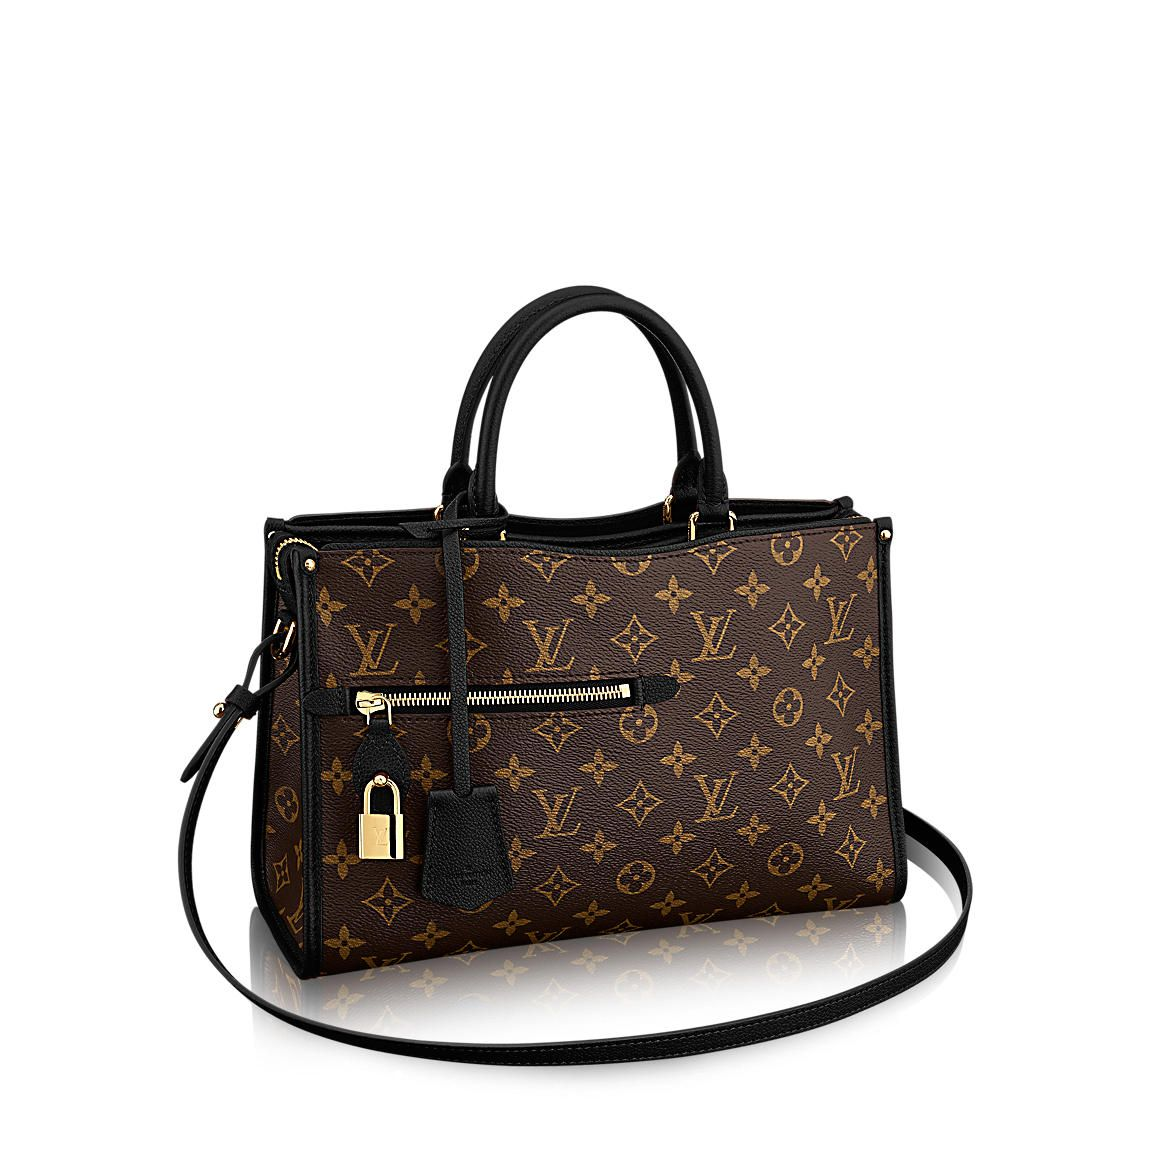 bfed4497e830 Popincourt MM Monogram Canvas in WOMEN s HANDBAGS collections by Louis  Vuitton